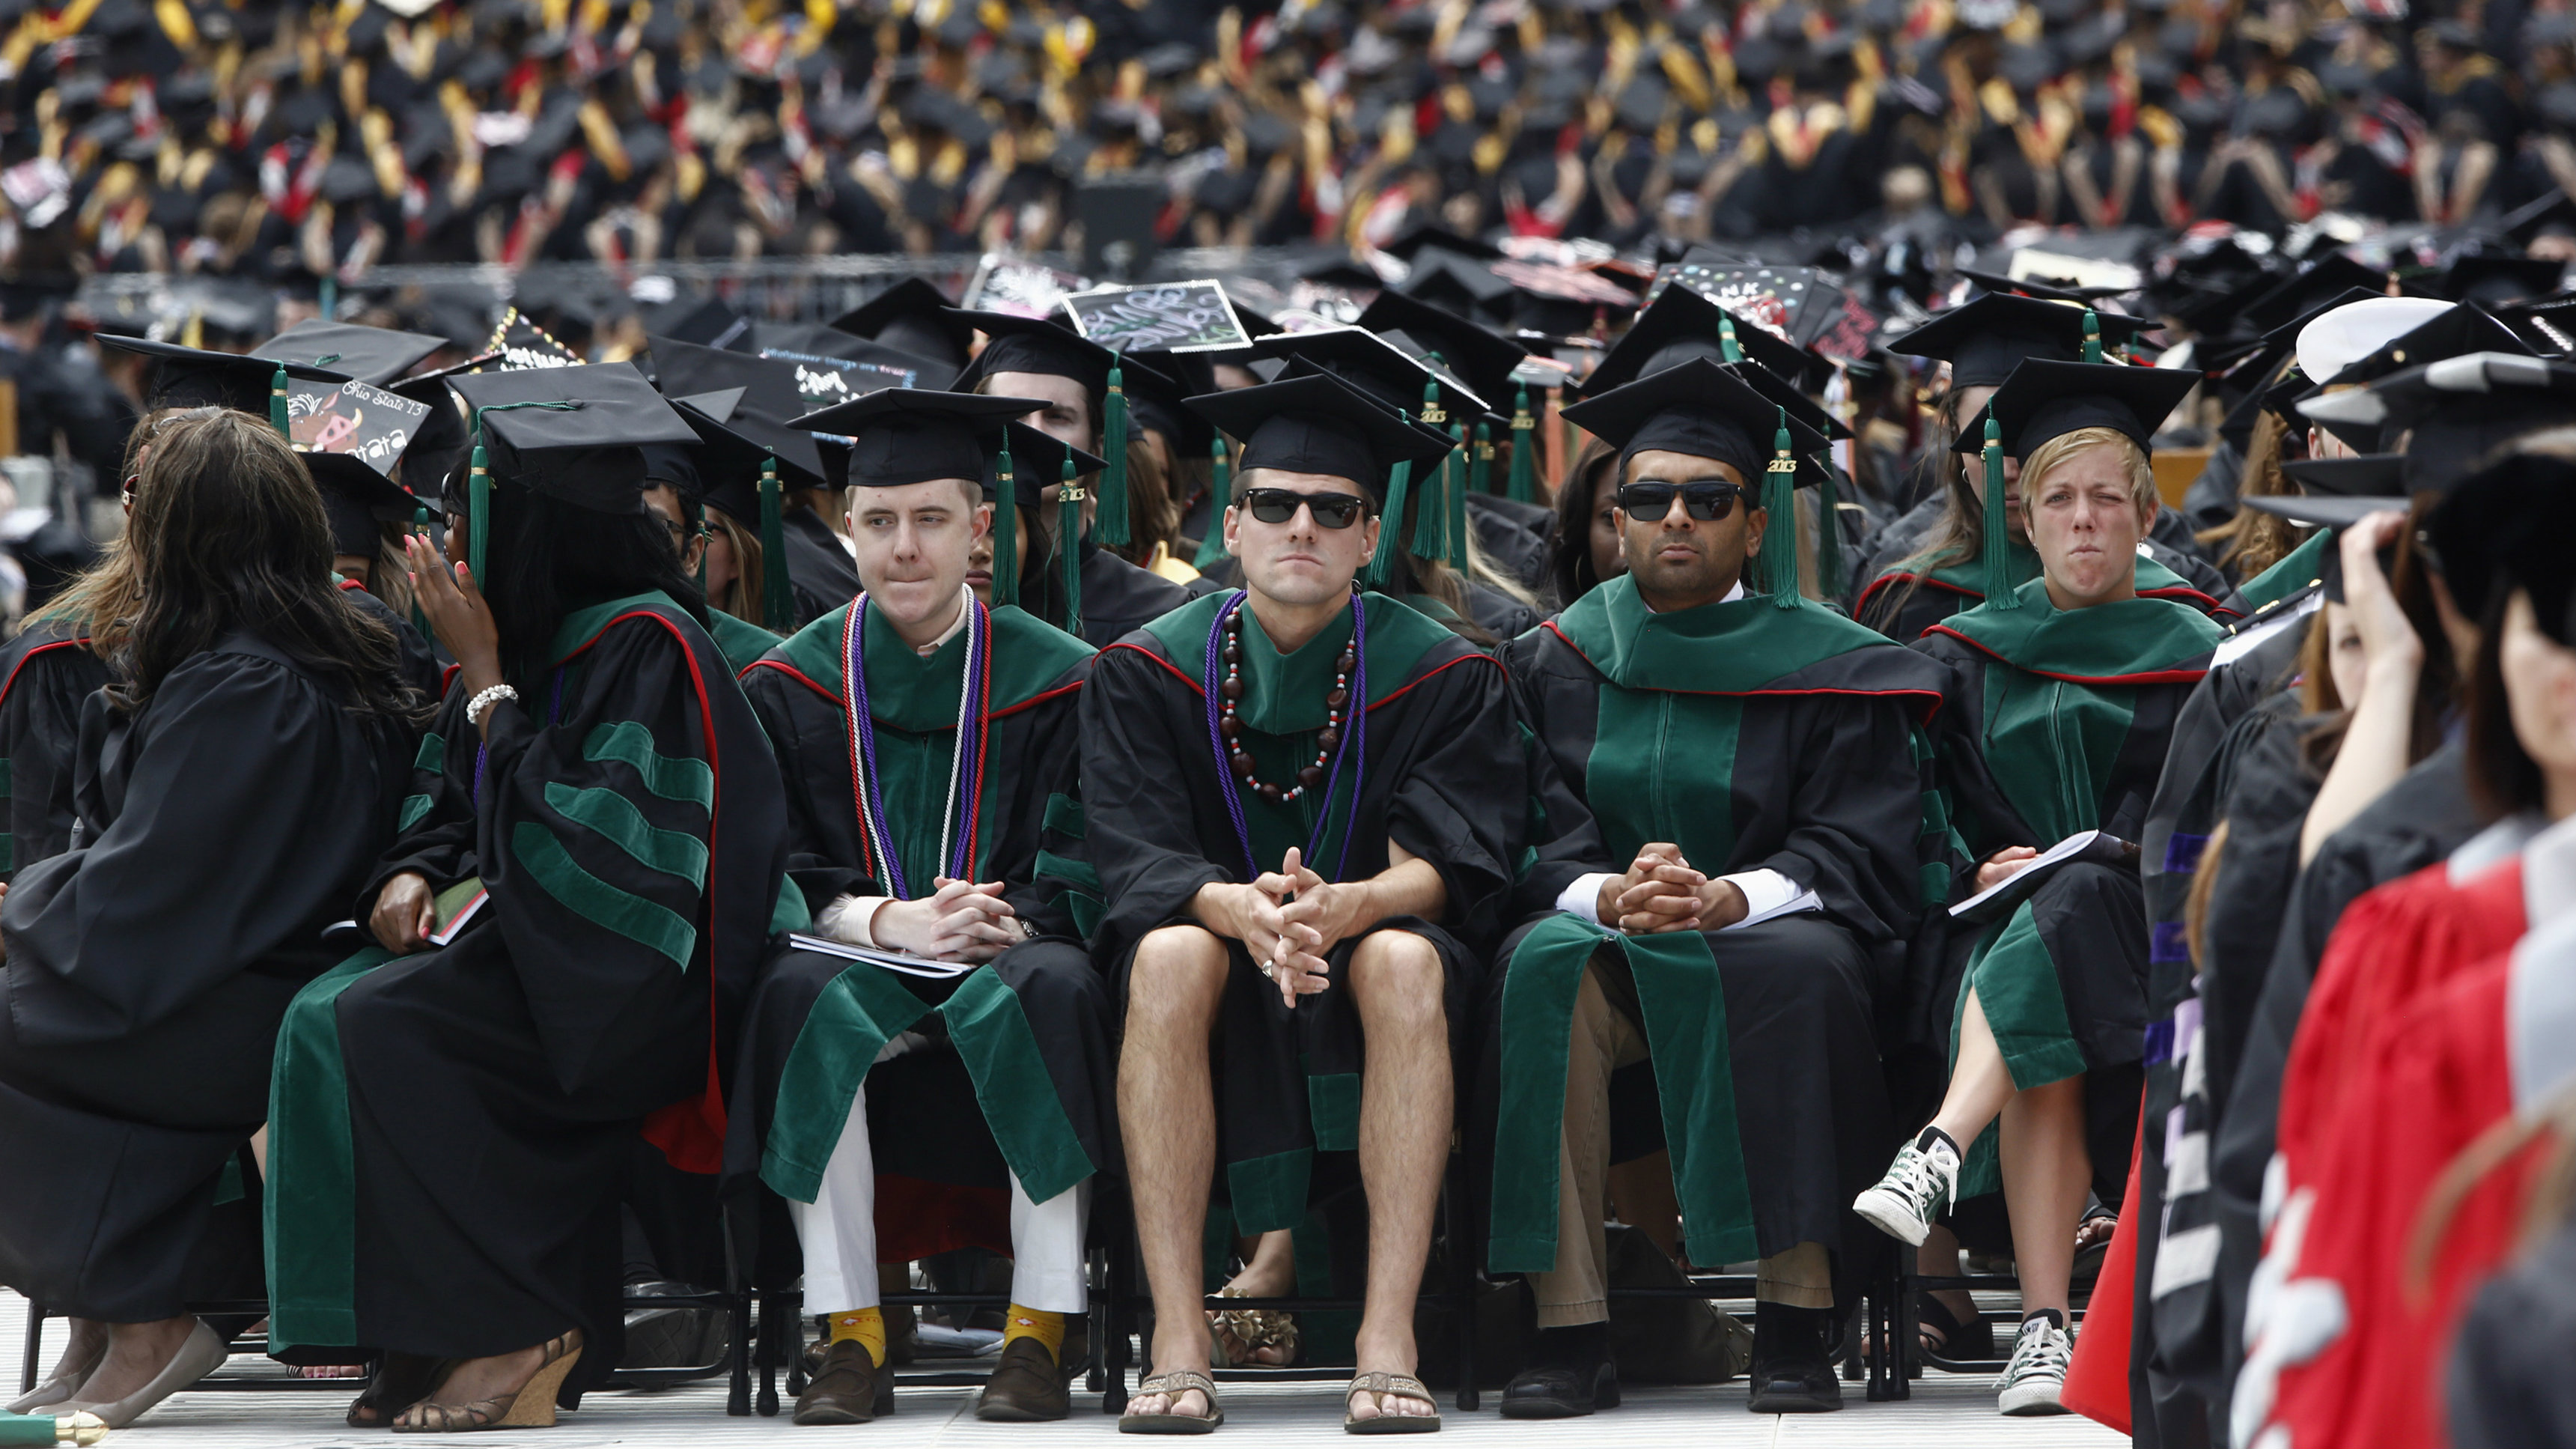 Your college major is a pretty good indication of how smart you are